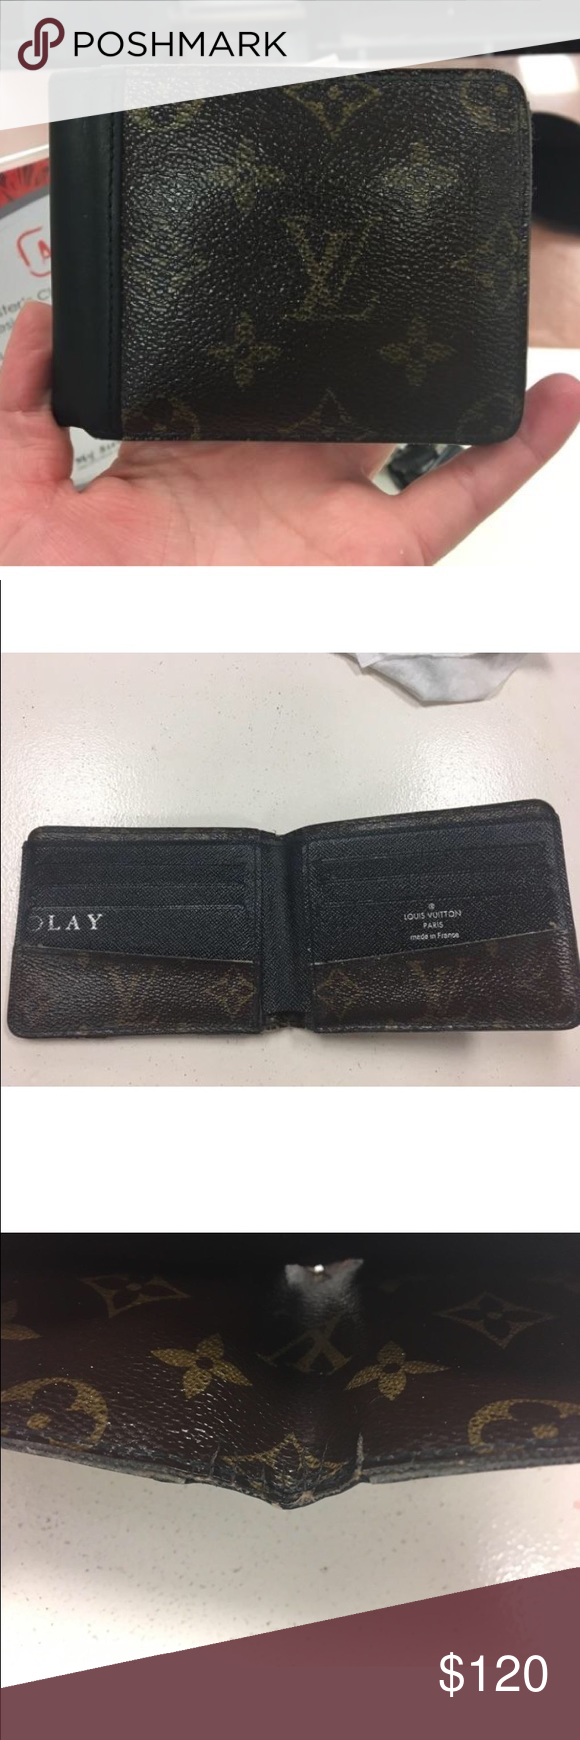 Louis Vuitton Monogram Men's Wallet This is a men's bifold wallet that has some wear pictured and has initials on the inside. Louis Vuitton Bags Wallets